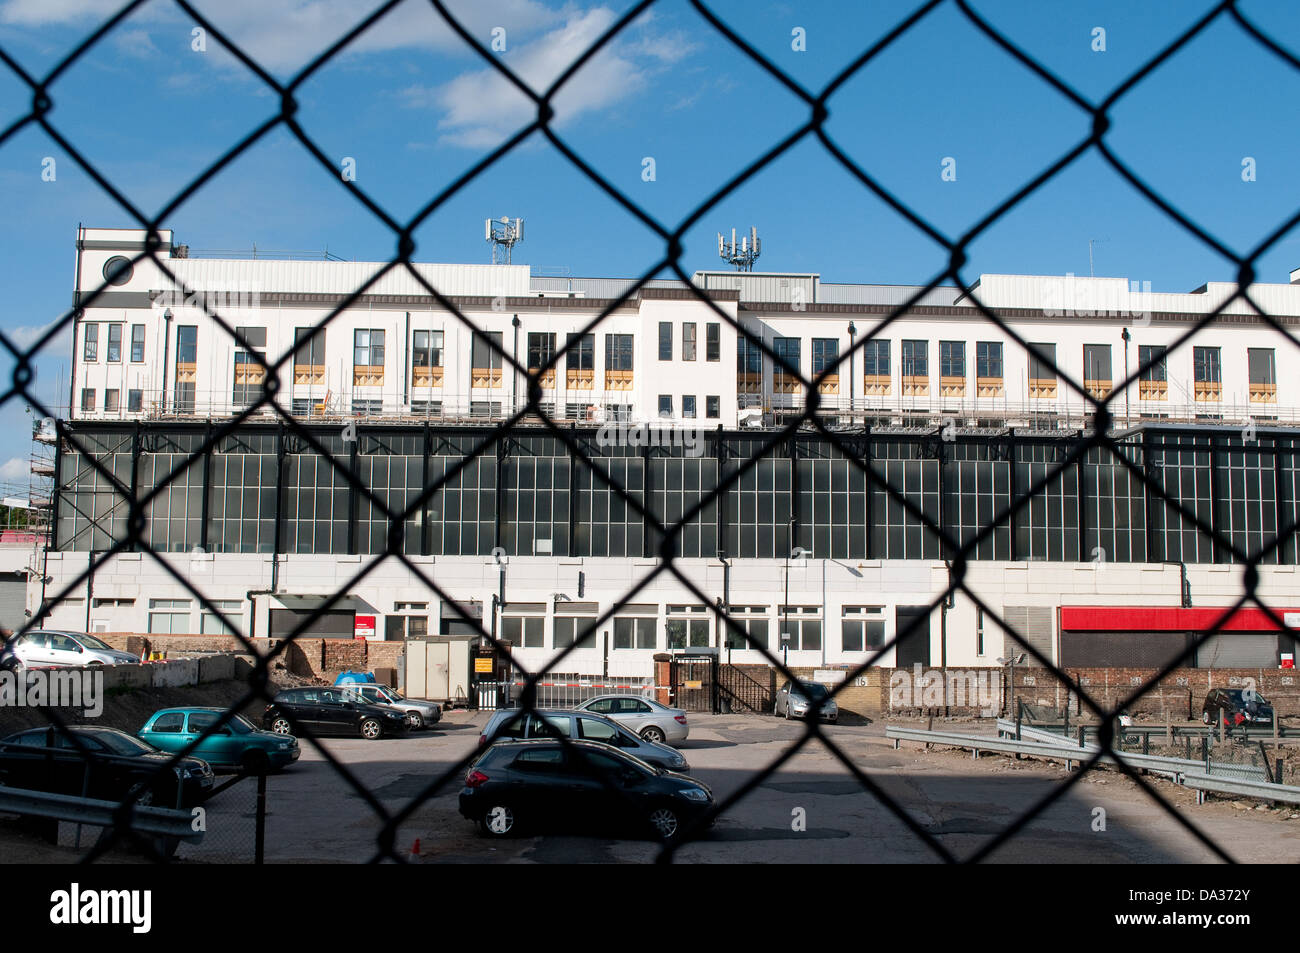 Car park and British Postal Museum through fence, Holborn, London, UK - Stock Image